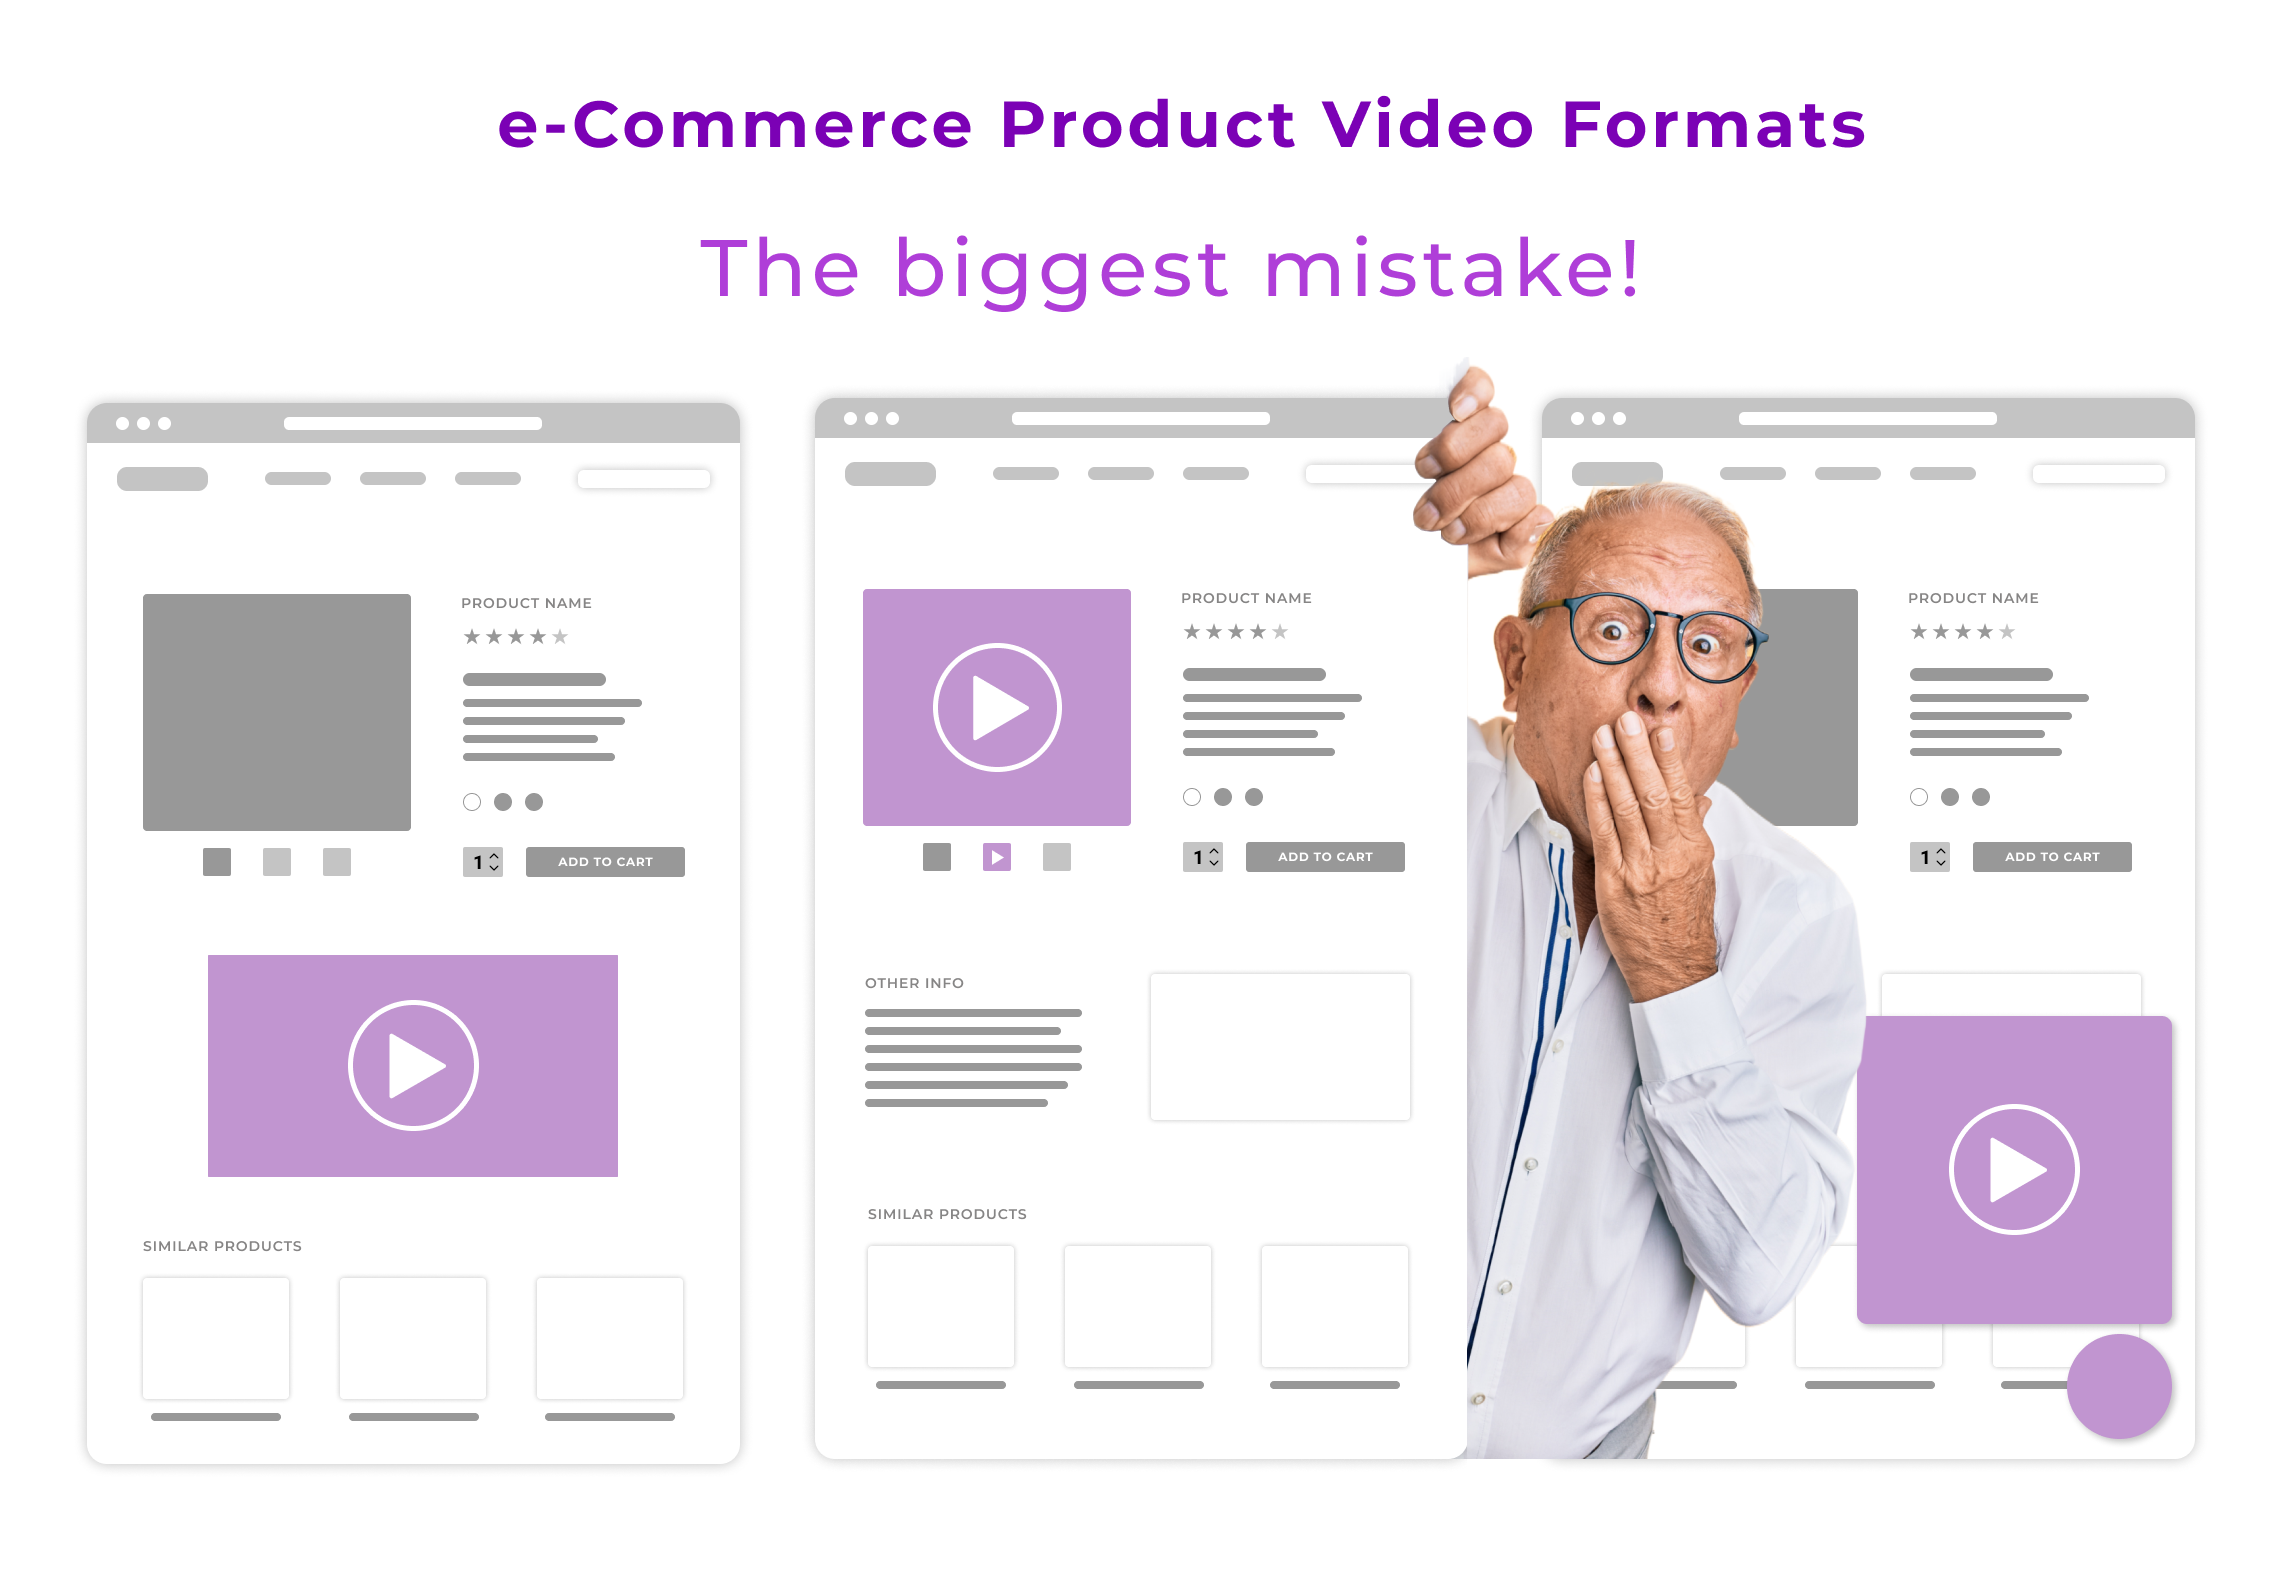 What is the biggest mistake e-merchants make in embedding videos on a product page?